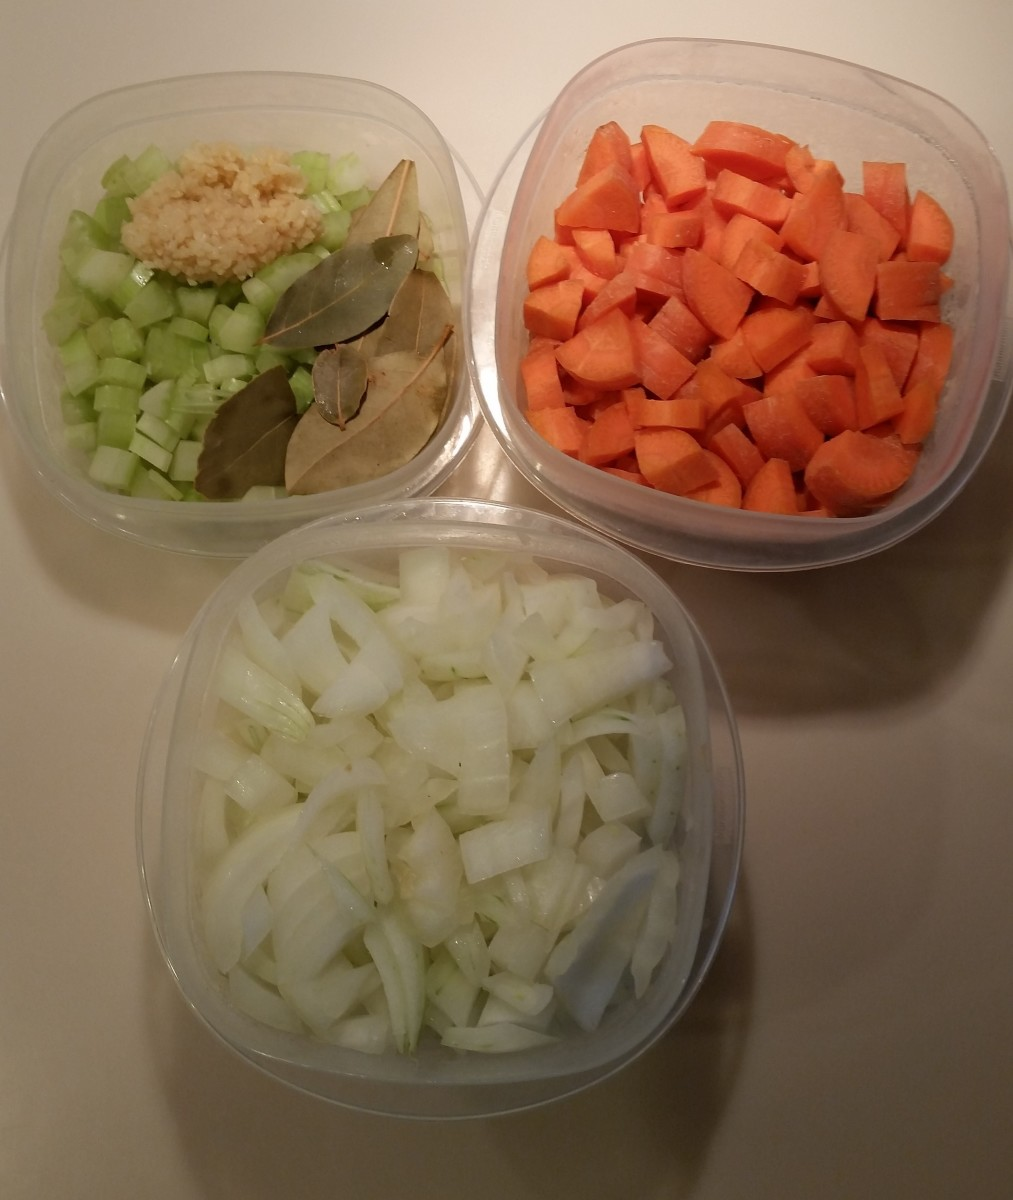 This shows the chopped carrots, chopped celery, chopped onions, some bay leaves and some chopped fresh garlic cloves.